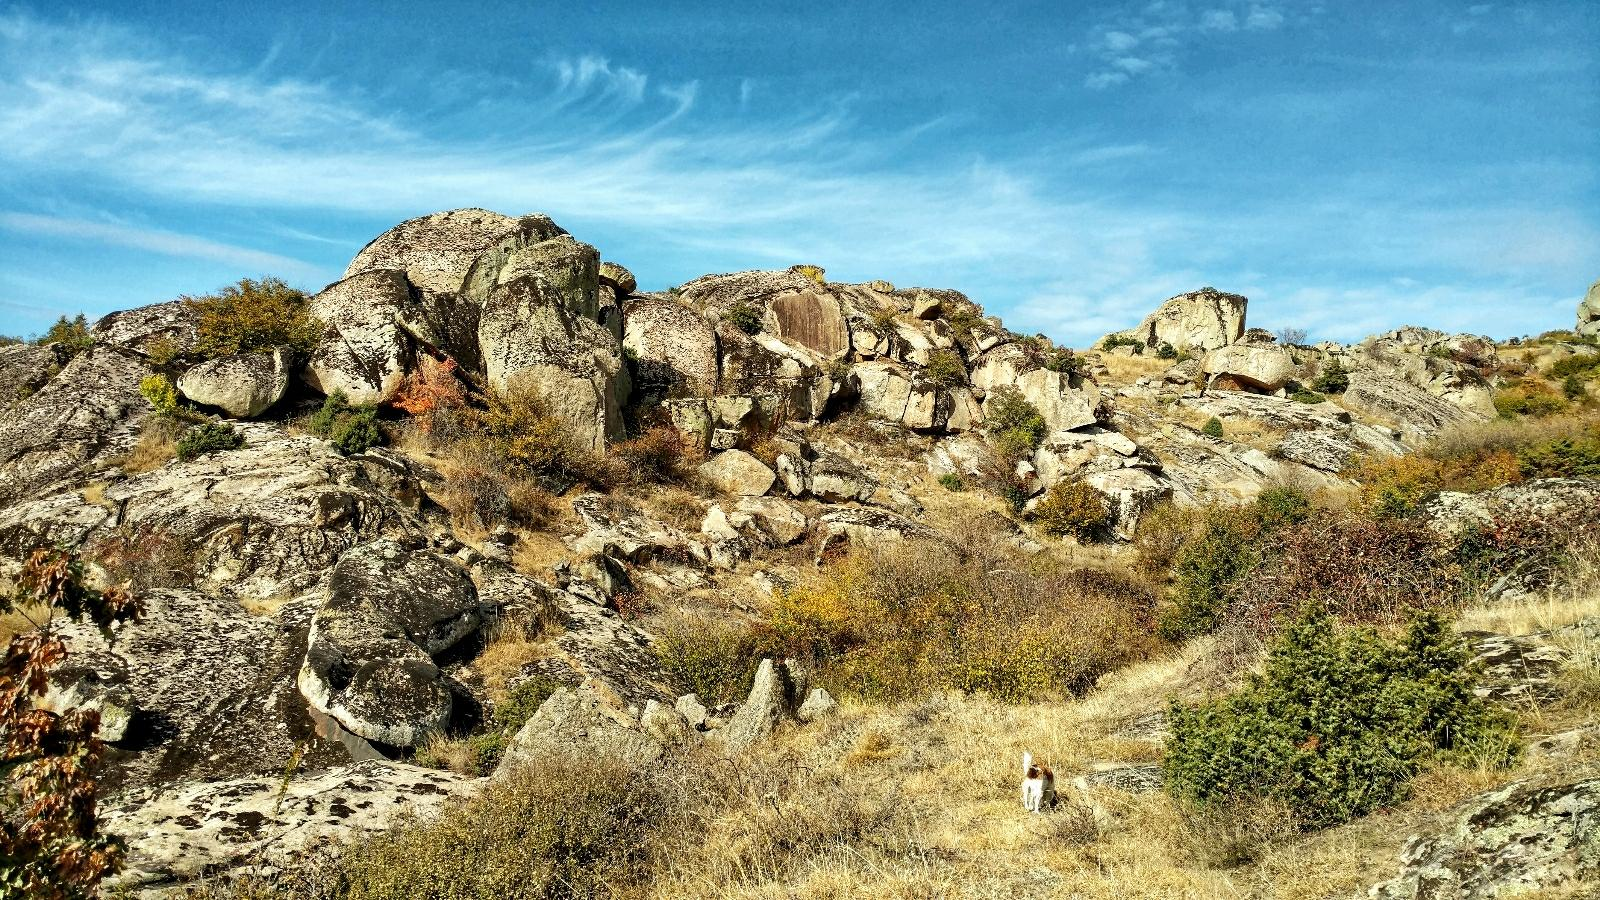 BLOG | Bouldering in Prilep, North Macedonia